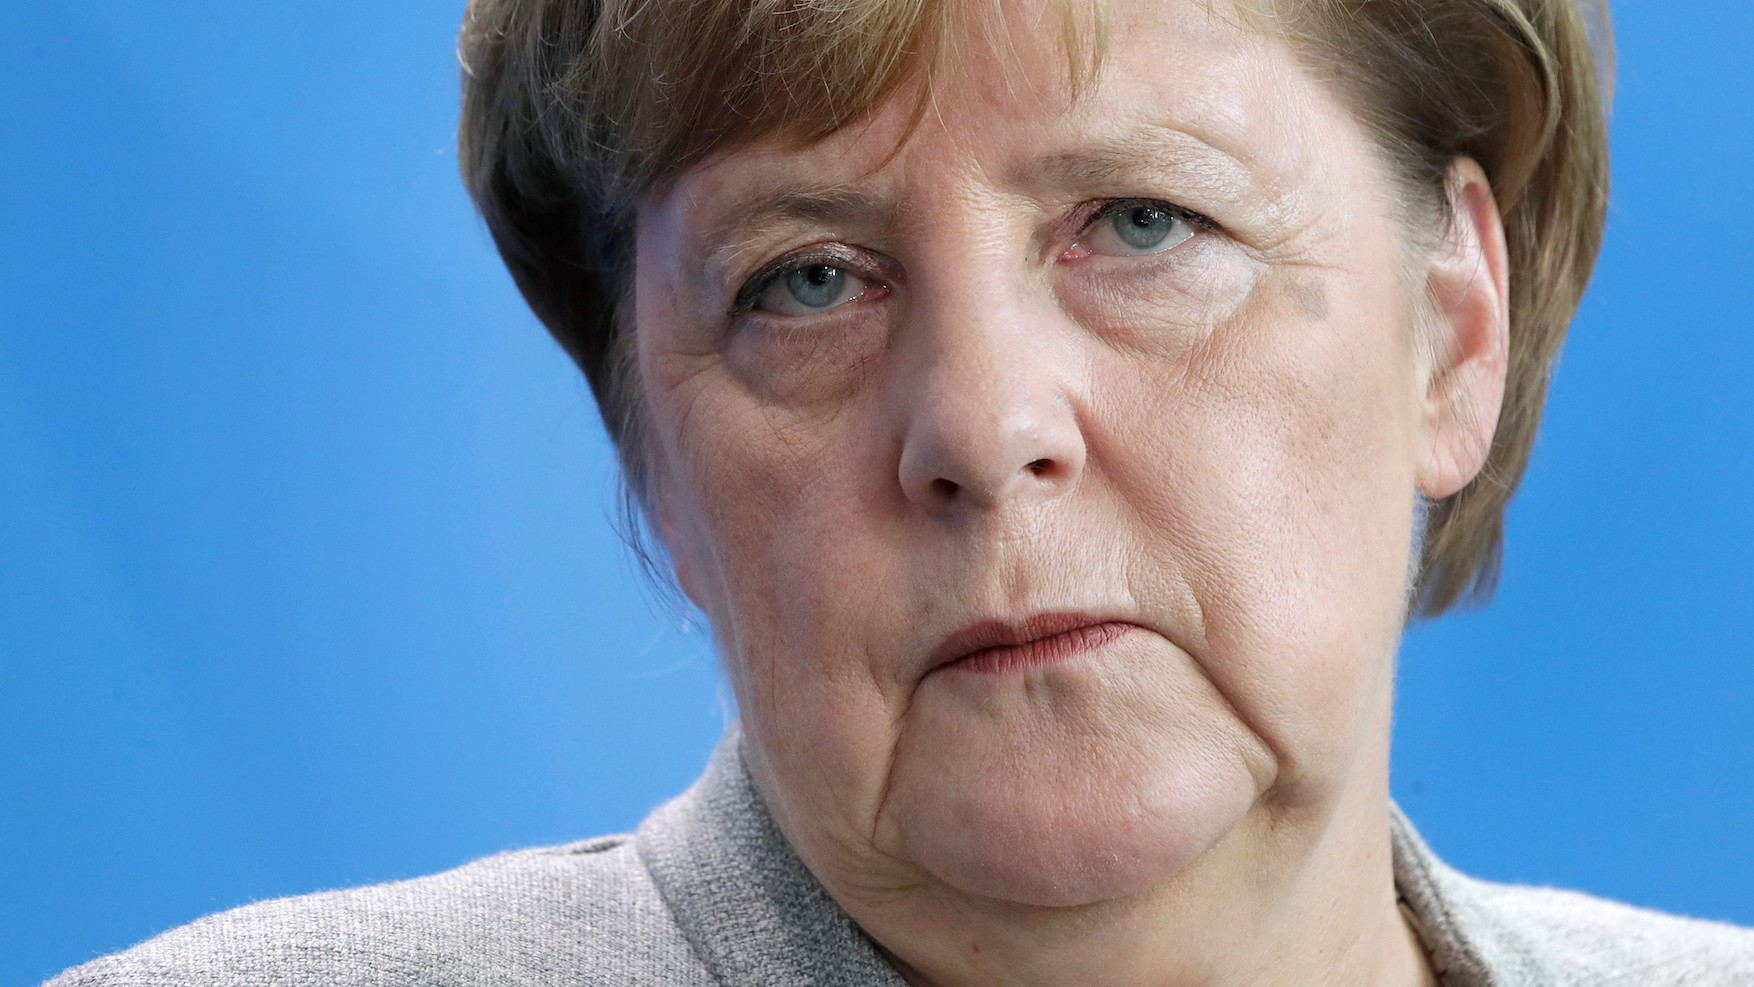 Angela Merkel's 18-year reign could be coming to an end